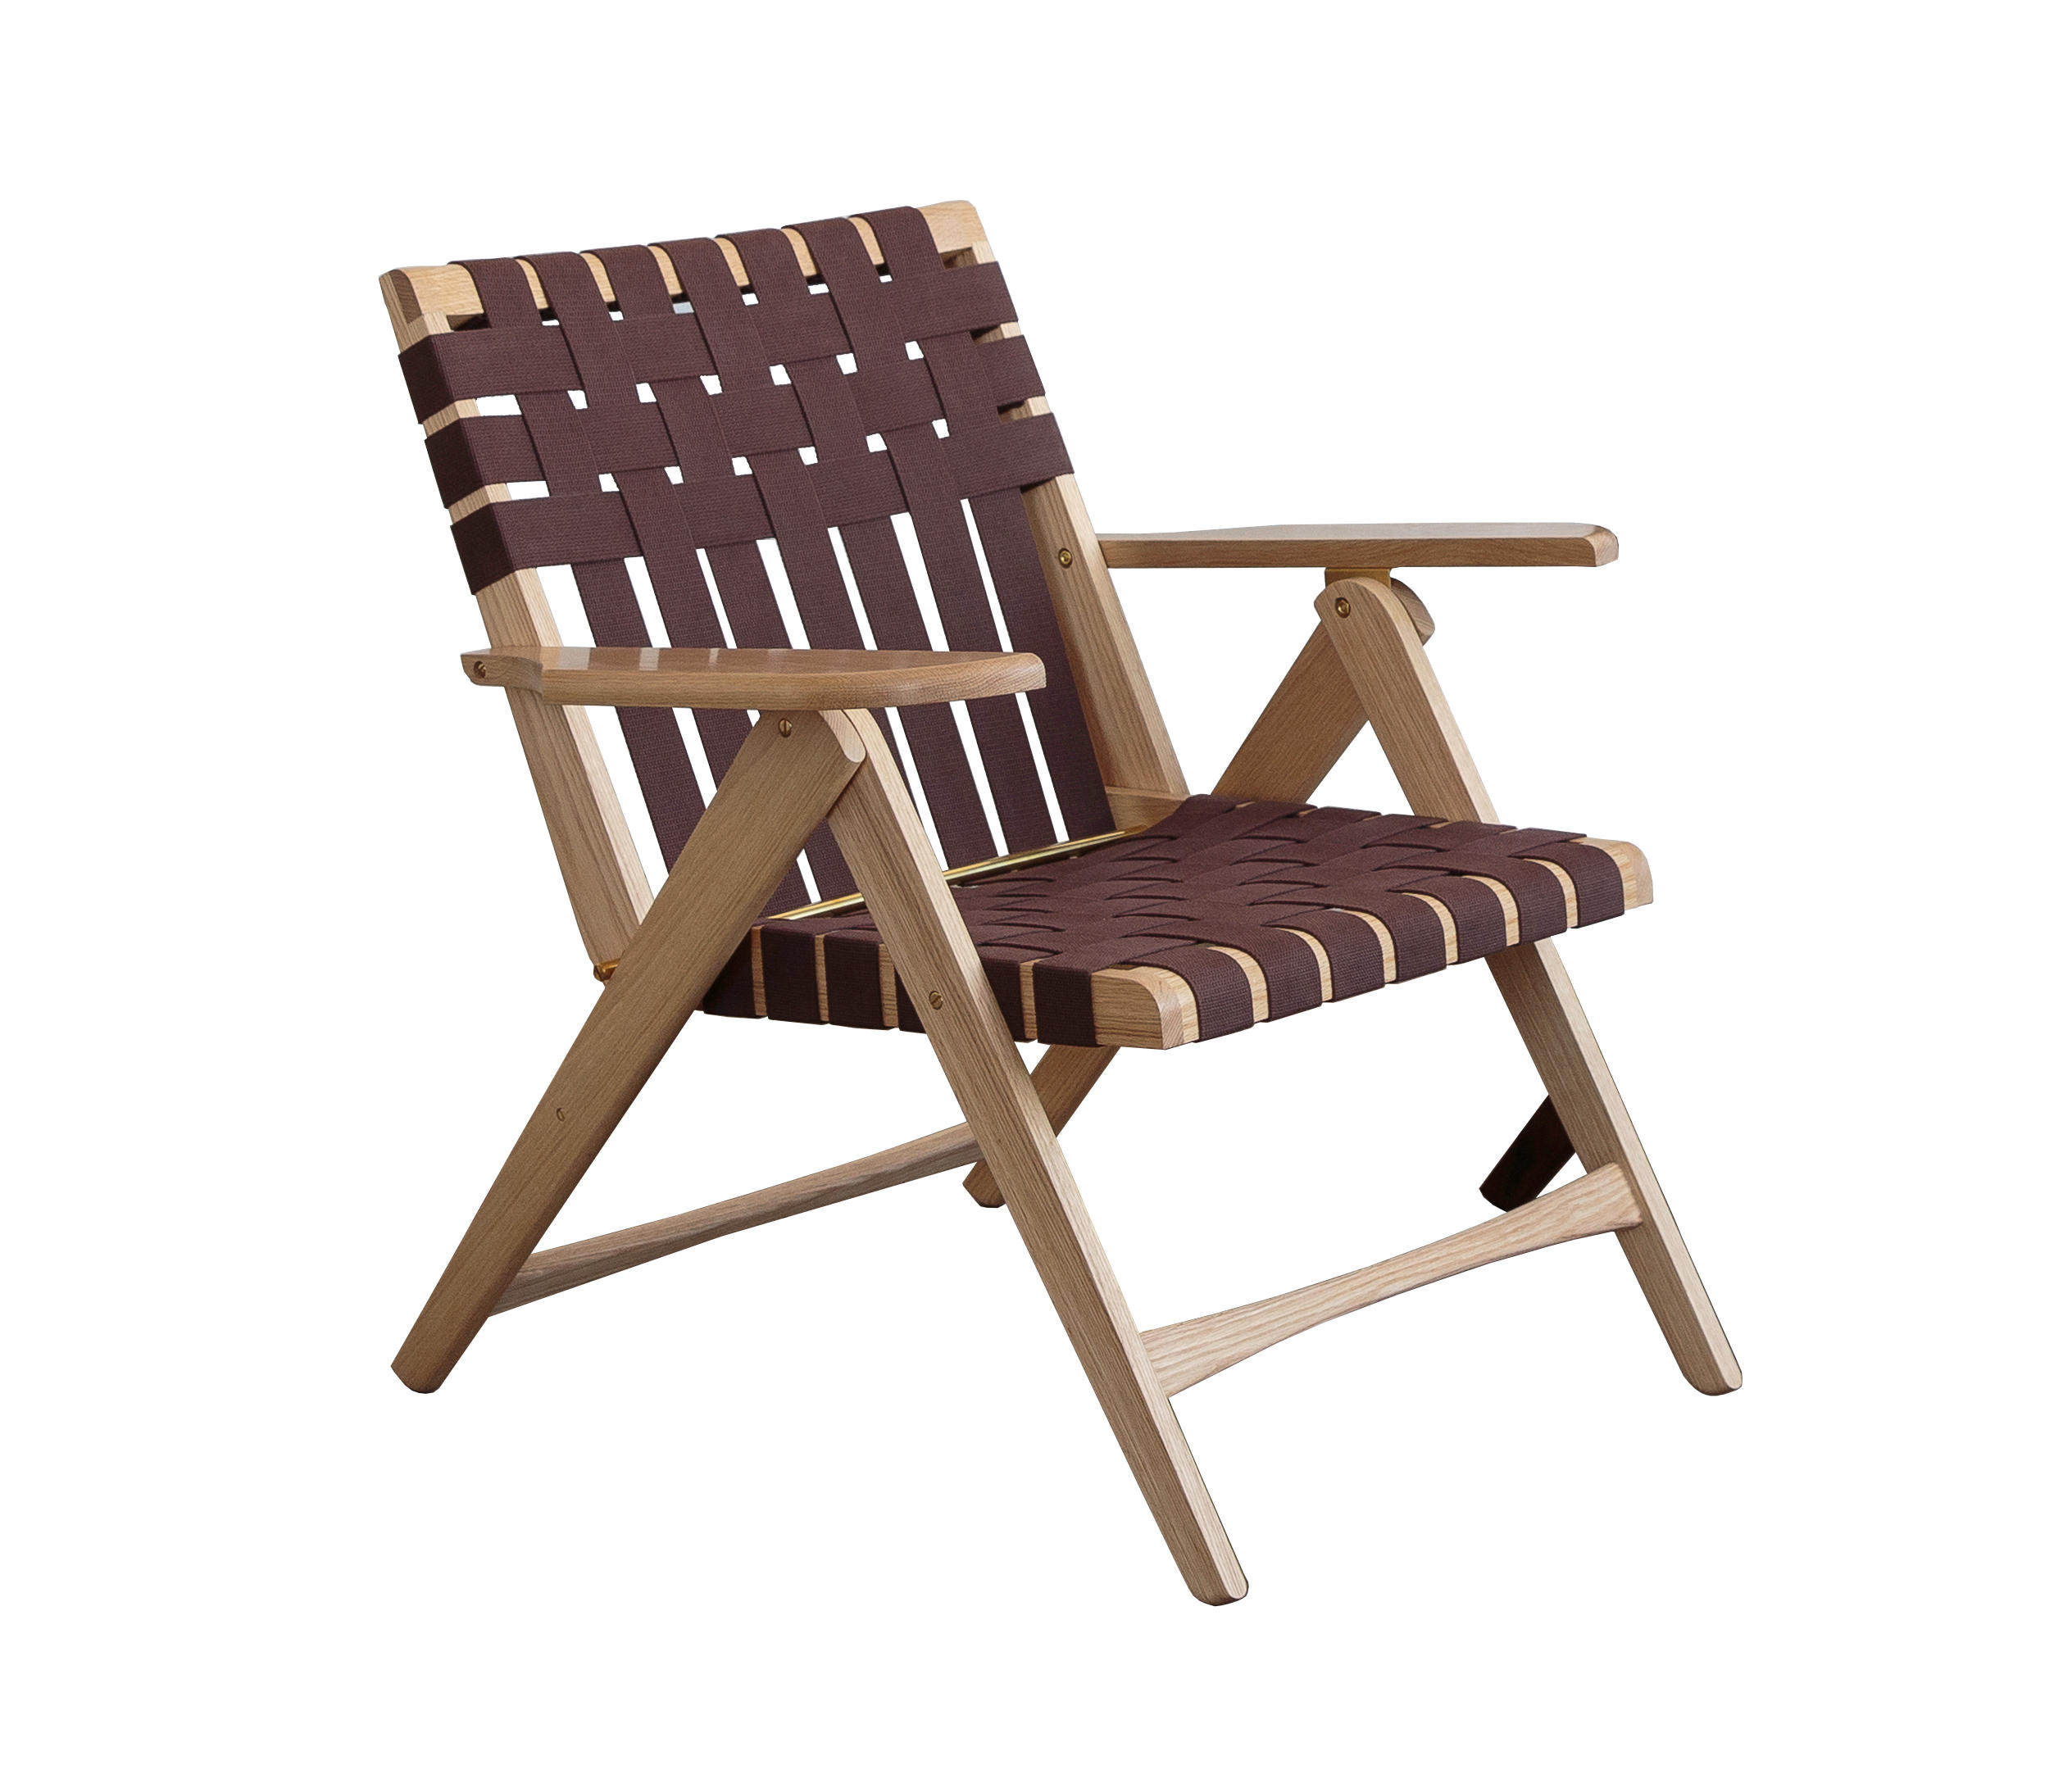 FOLDING LOUNGE CHAIR OAK Lounge chairs from Todd St John